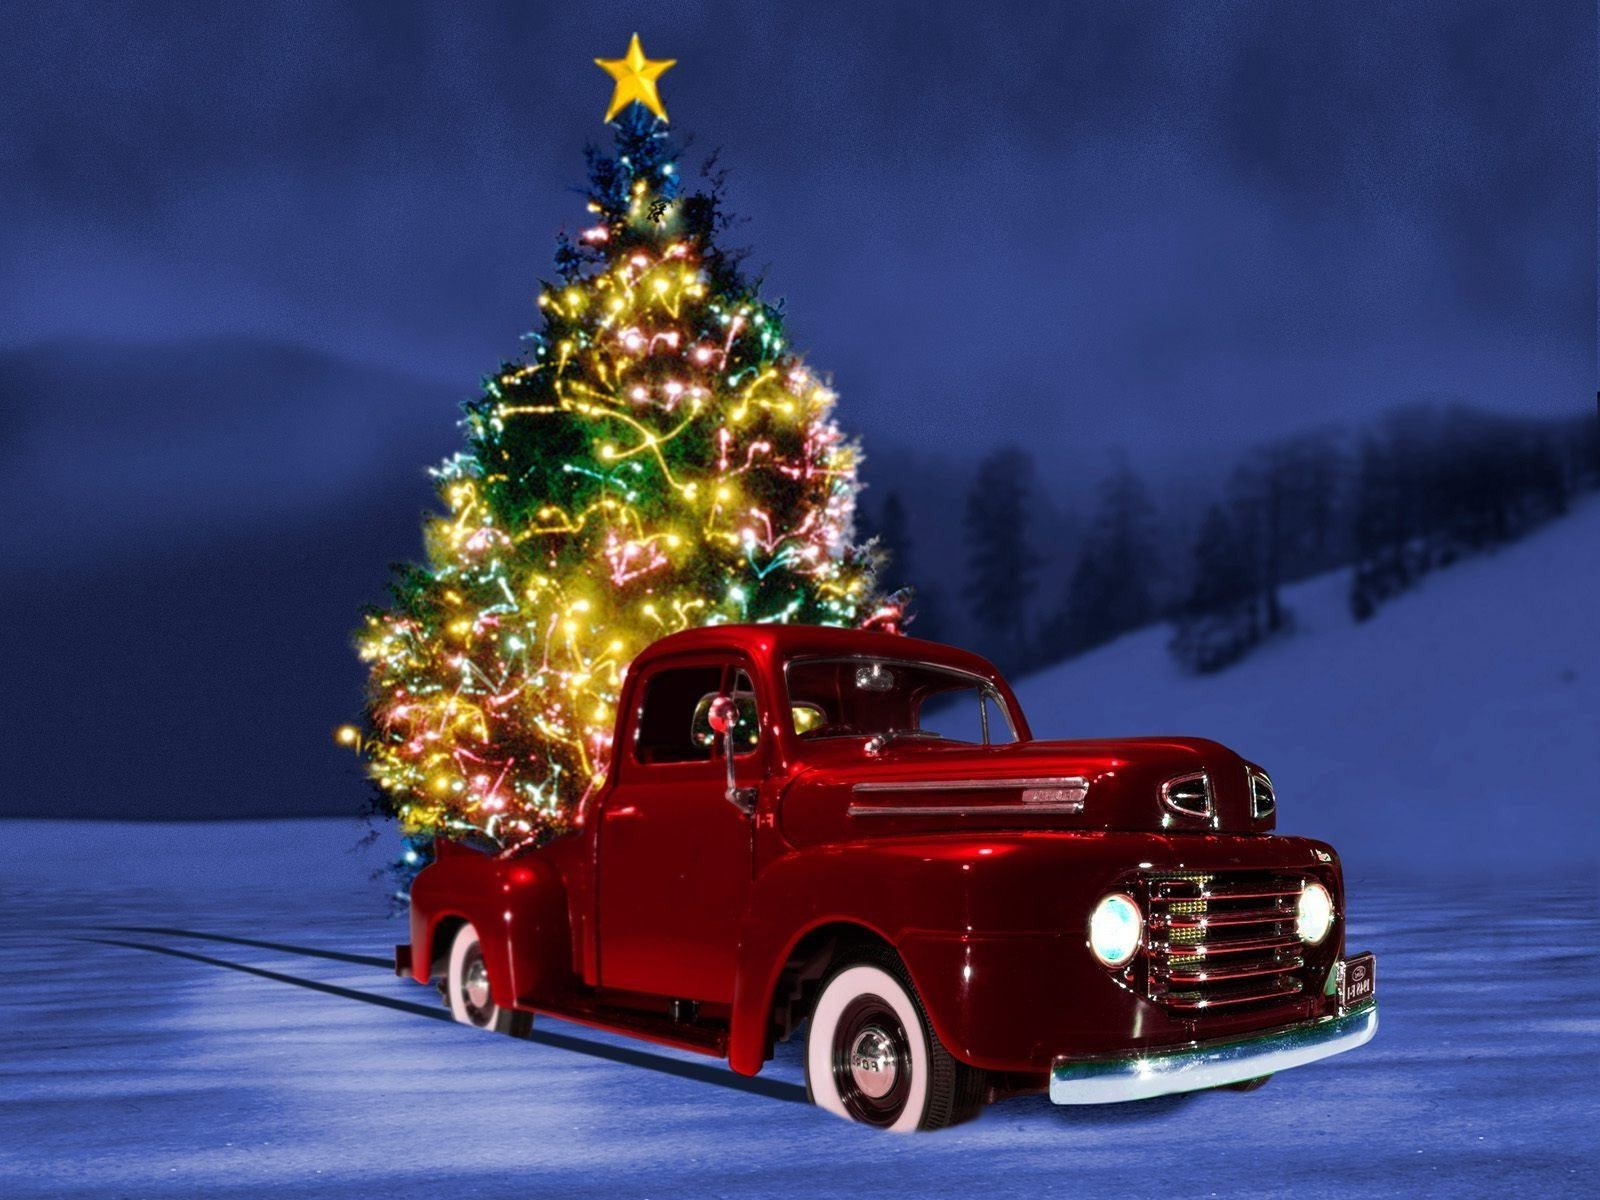 christmas vehicle car winter transportation system fast outdoors